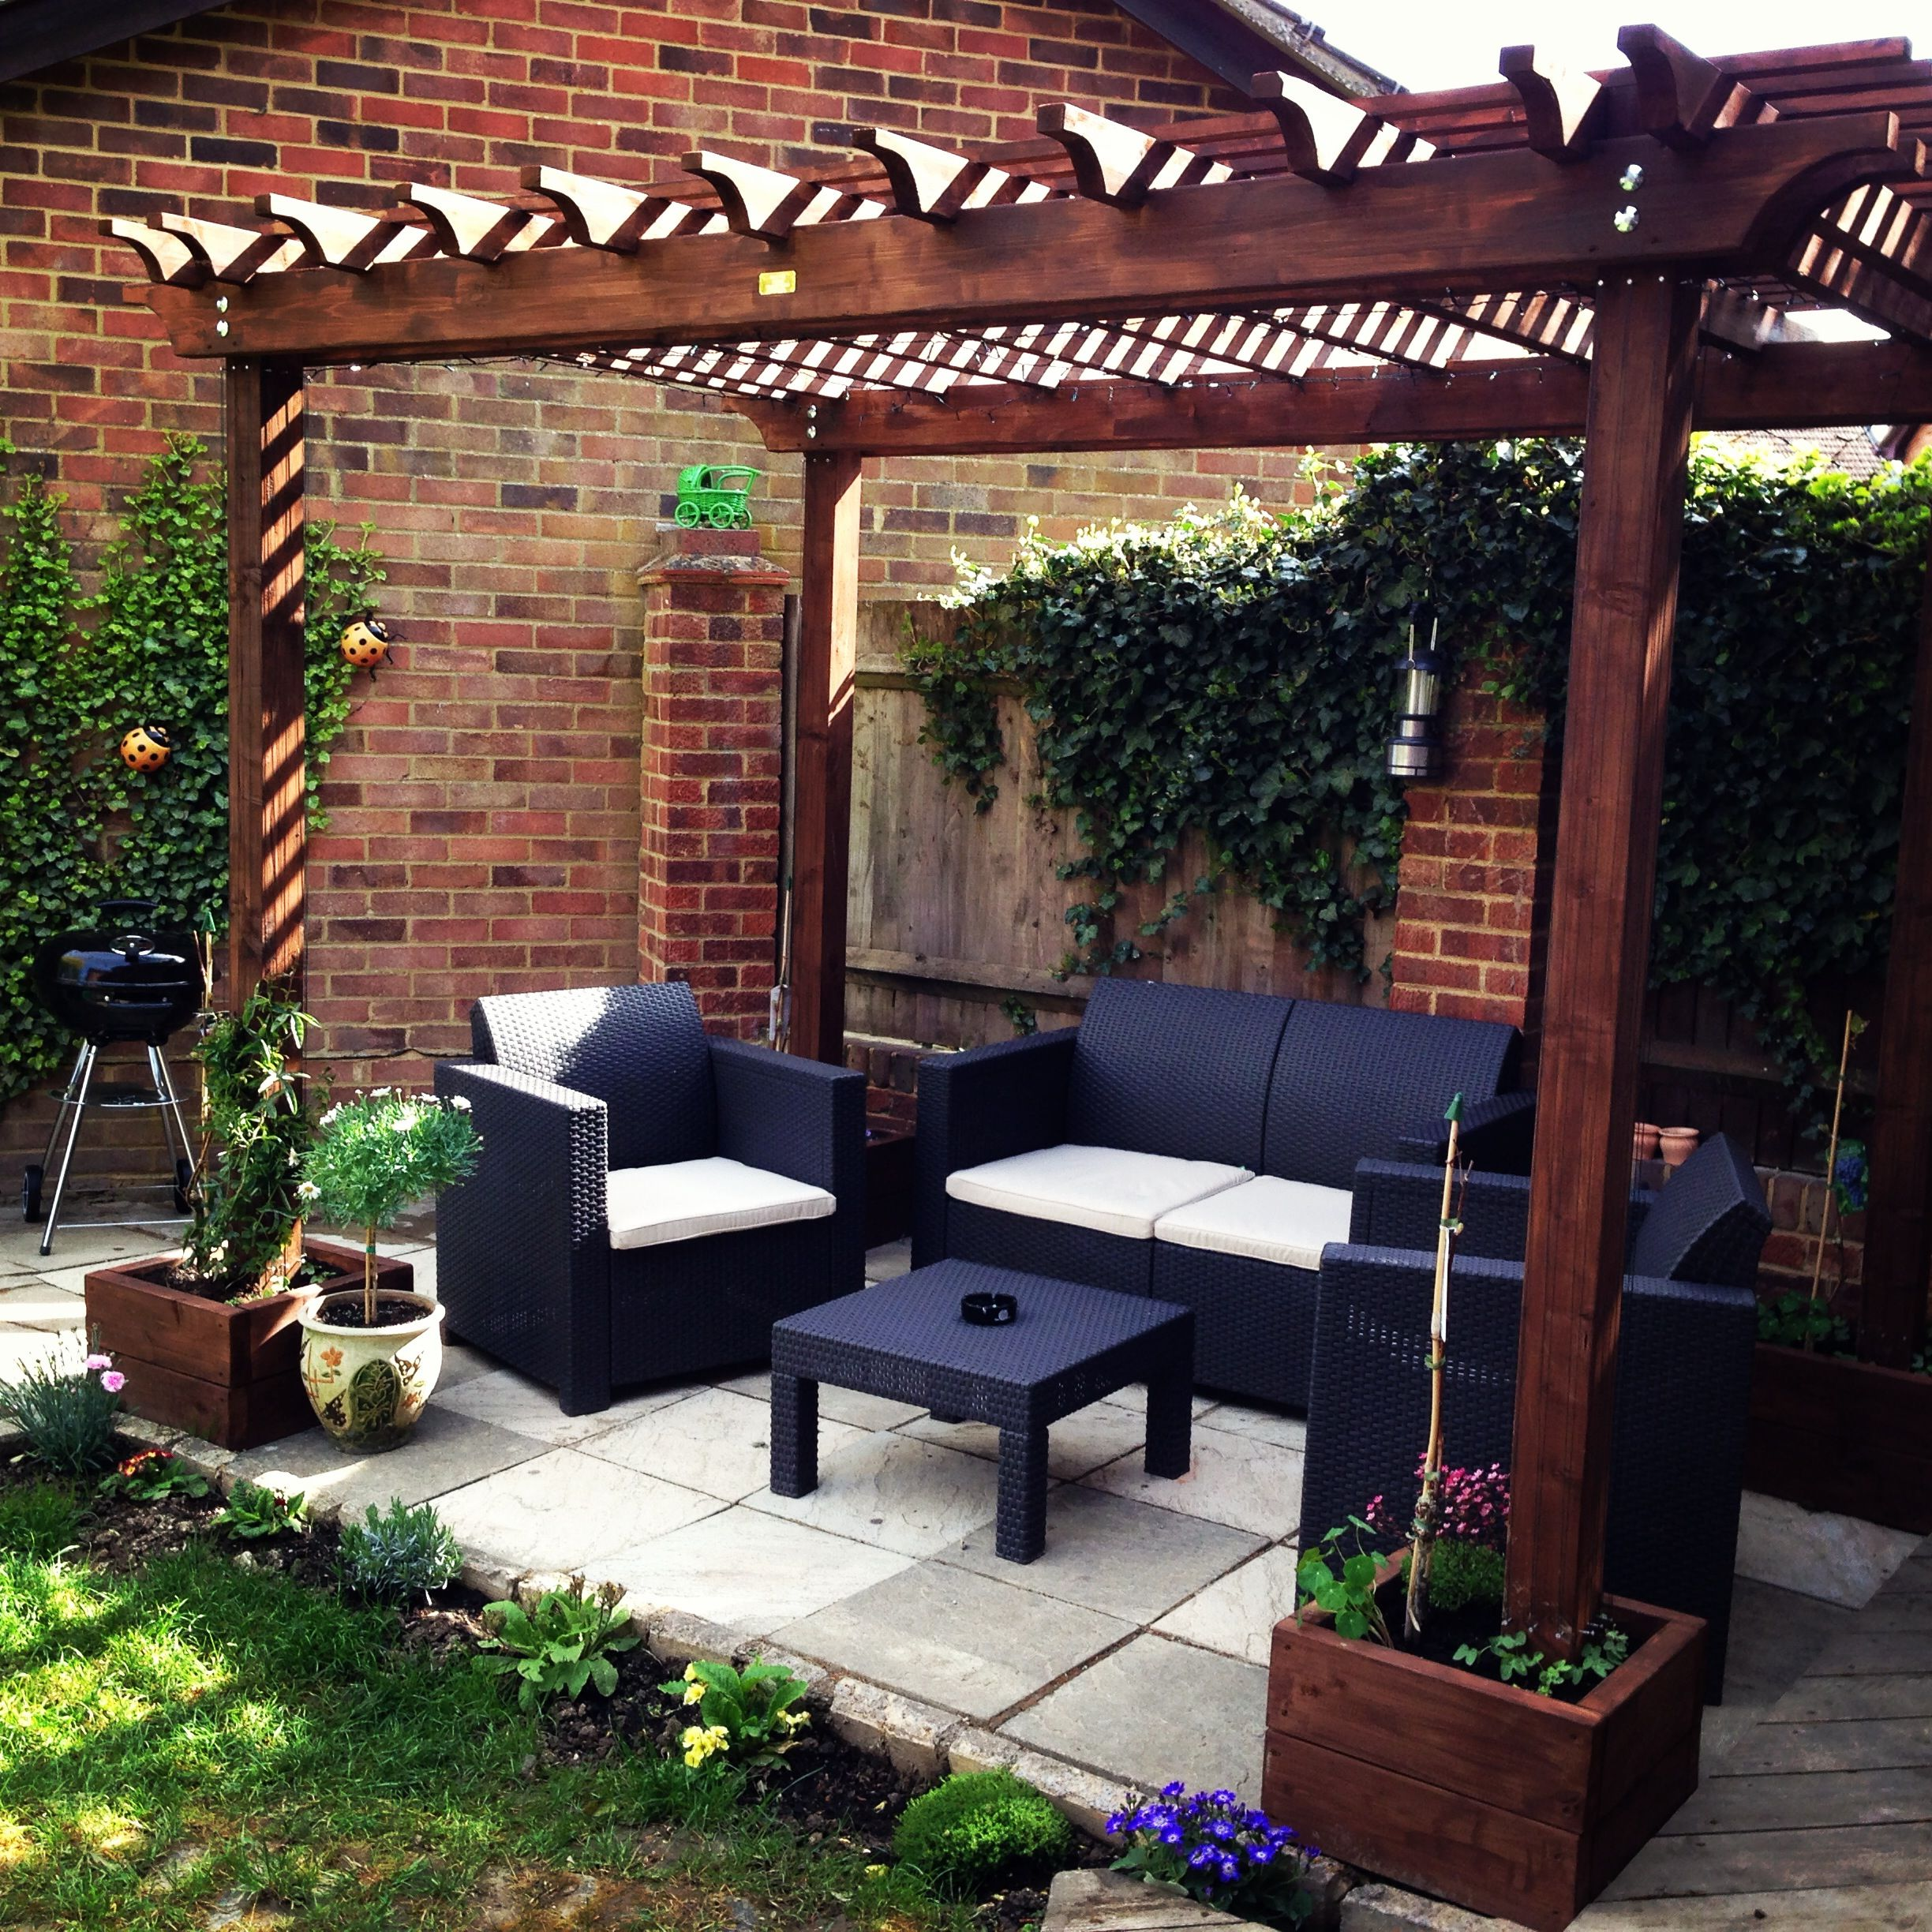 Big Range Of Pergola Kits For The Home Handy Man Http://diypergolakits.